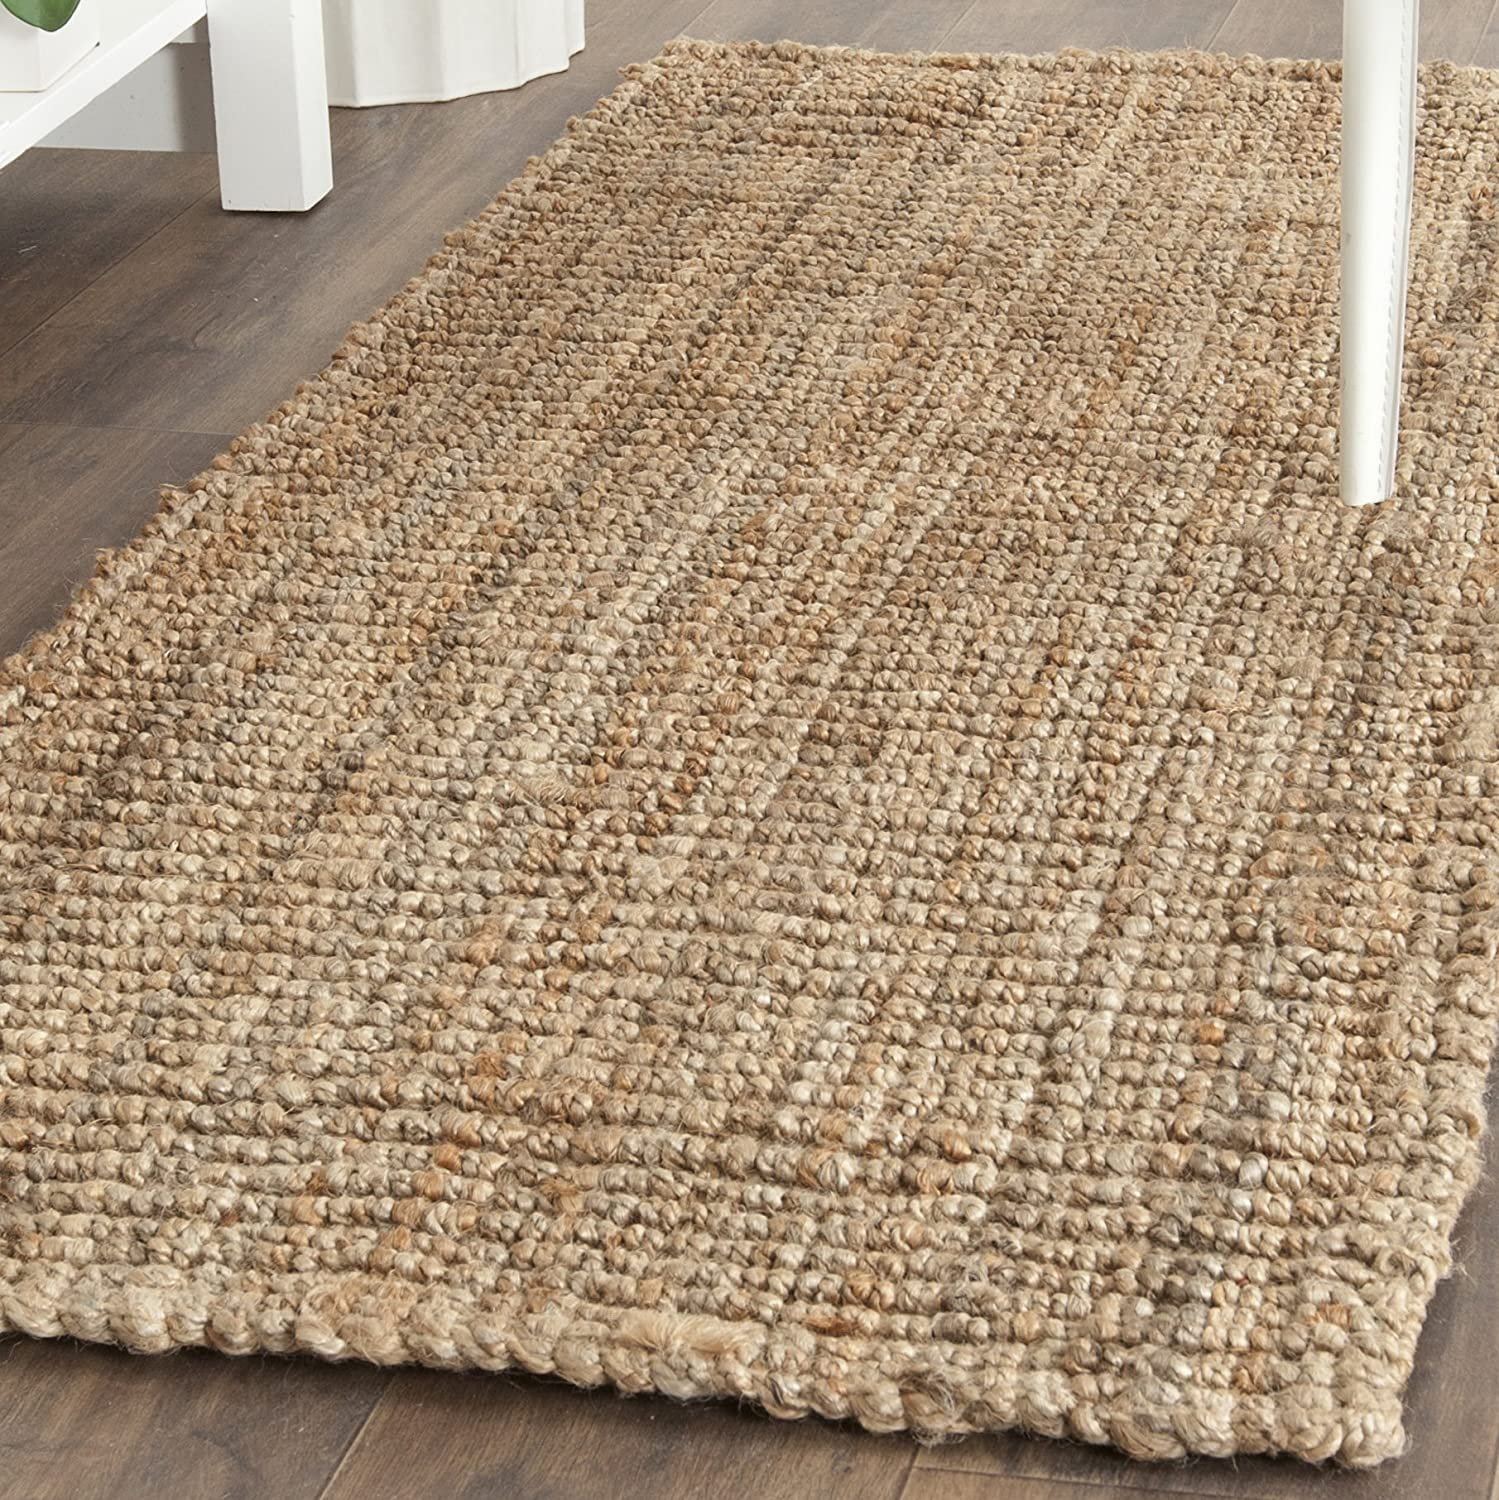 Safavieh Natural Fiber Collection Nf447a Hand Woven Natural Jute Area Rug 2 X 12